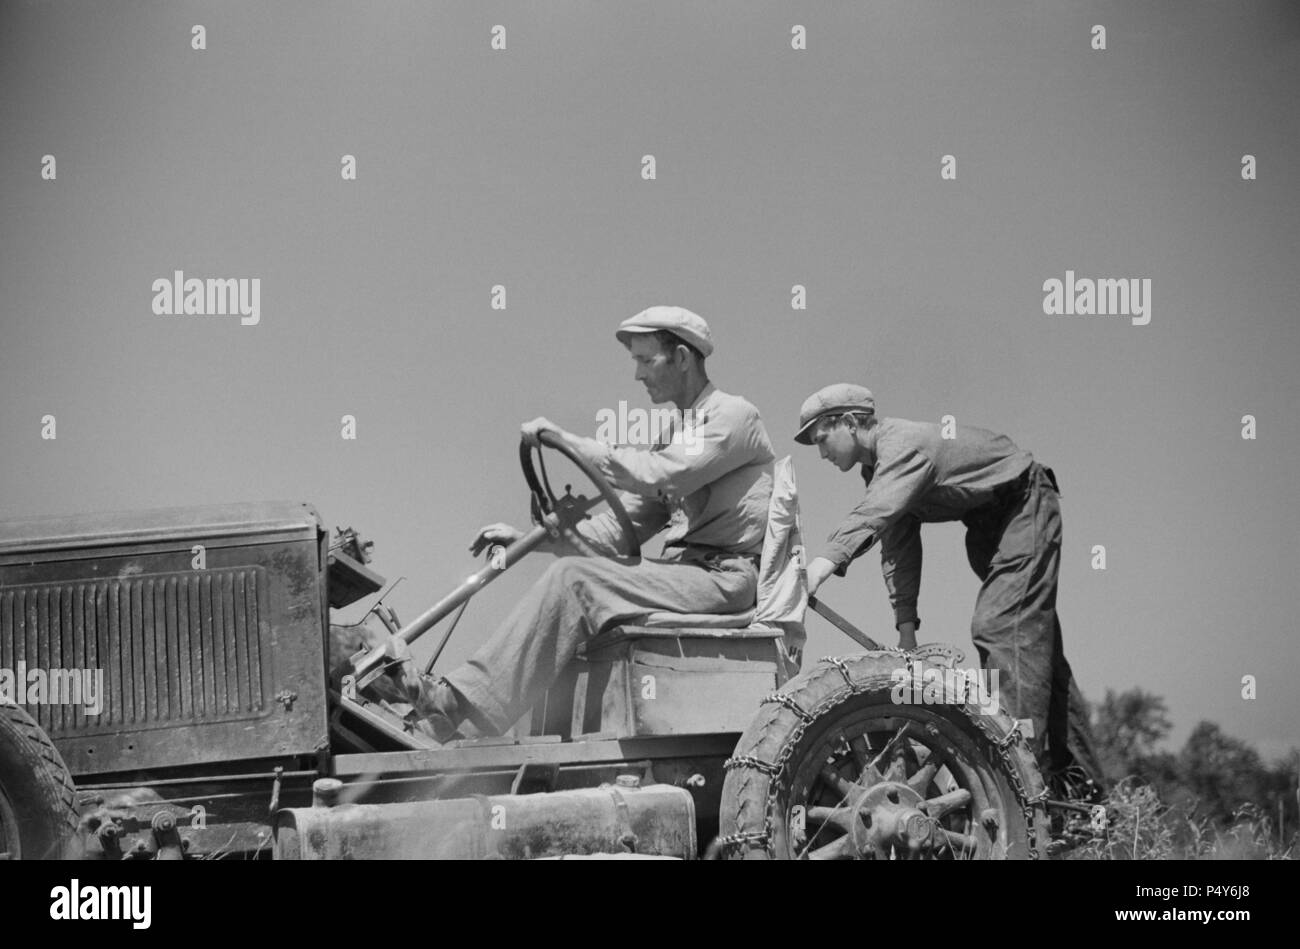 Luke Weldon, Small Farmer, and his son using Ancient Buick as Improvised Tractor. Automobile Purchased in Second-Hand Car Lot for Fifteen Dollars. New Bridgetown, New Jersey, USA, Edwin Rosskam, Farm Security Administration, June 1936 - Stock Image